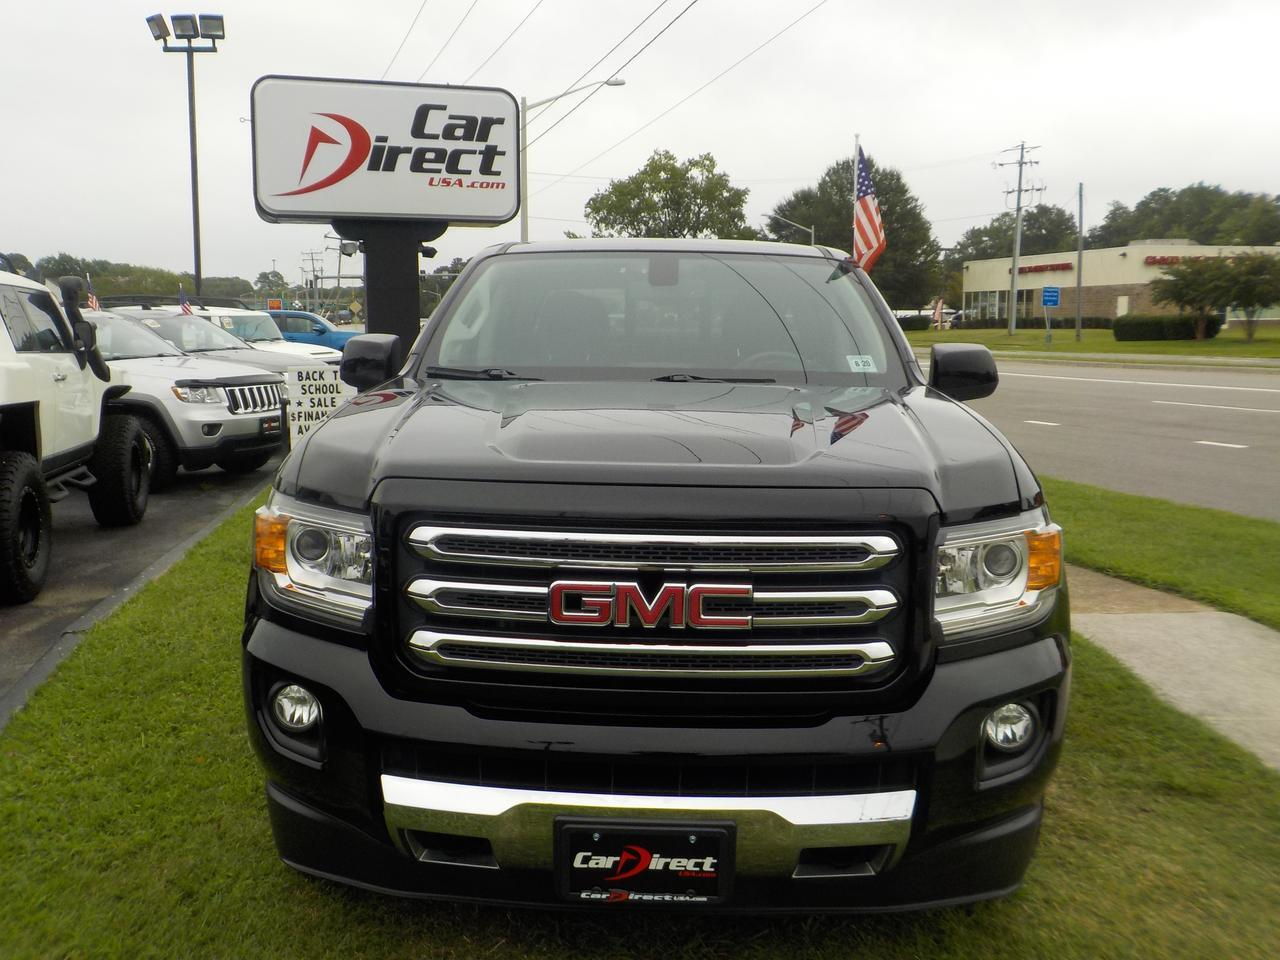 2016 GMC CANYON ALL TERRAIN CREW CAB 4X4, WARRANTY, NAVIGATION, HEATED SEATS, BLUETOOTH, REVERSE CAMERA, TOW PACKAGE